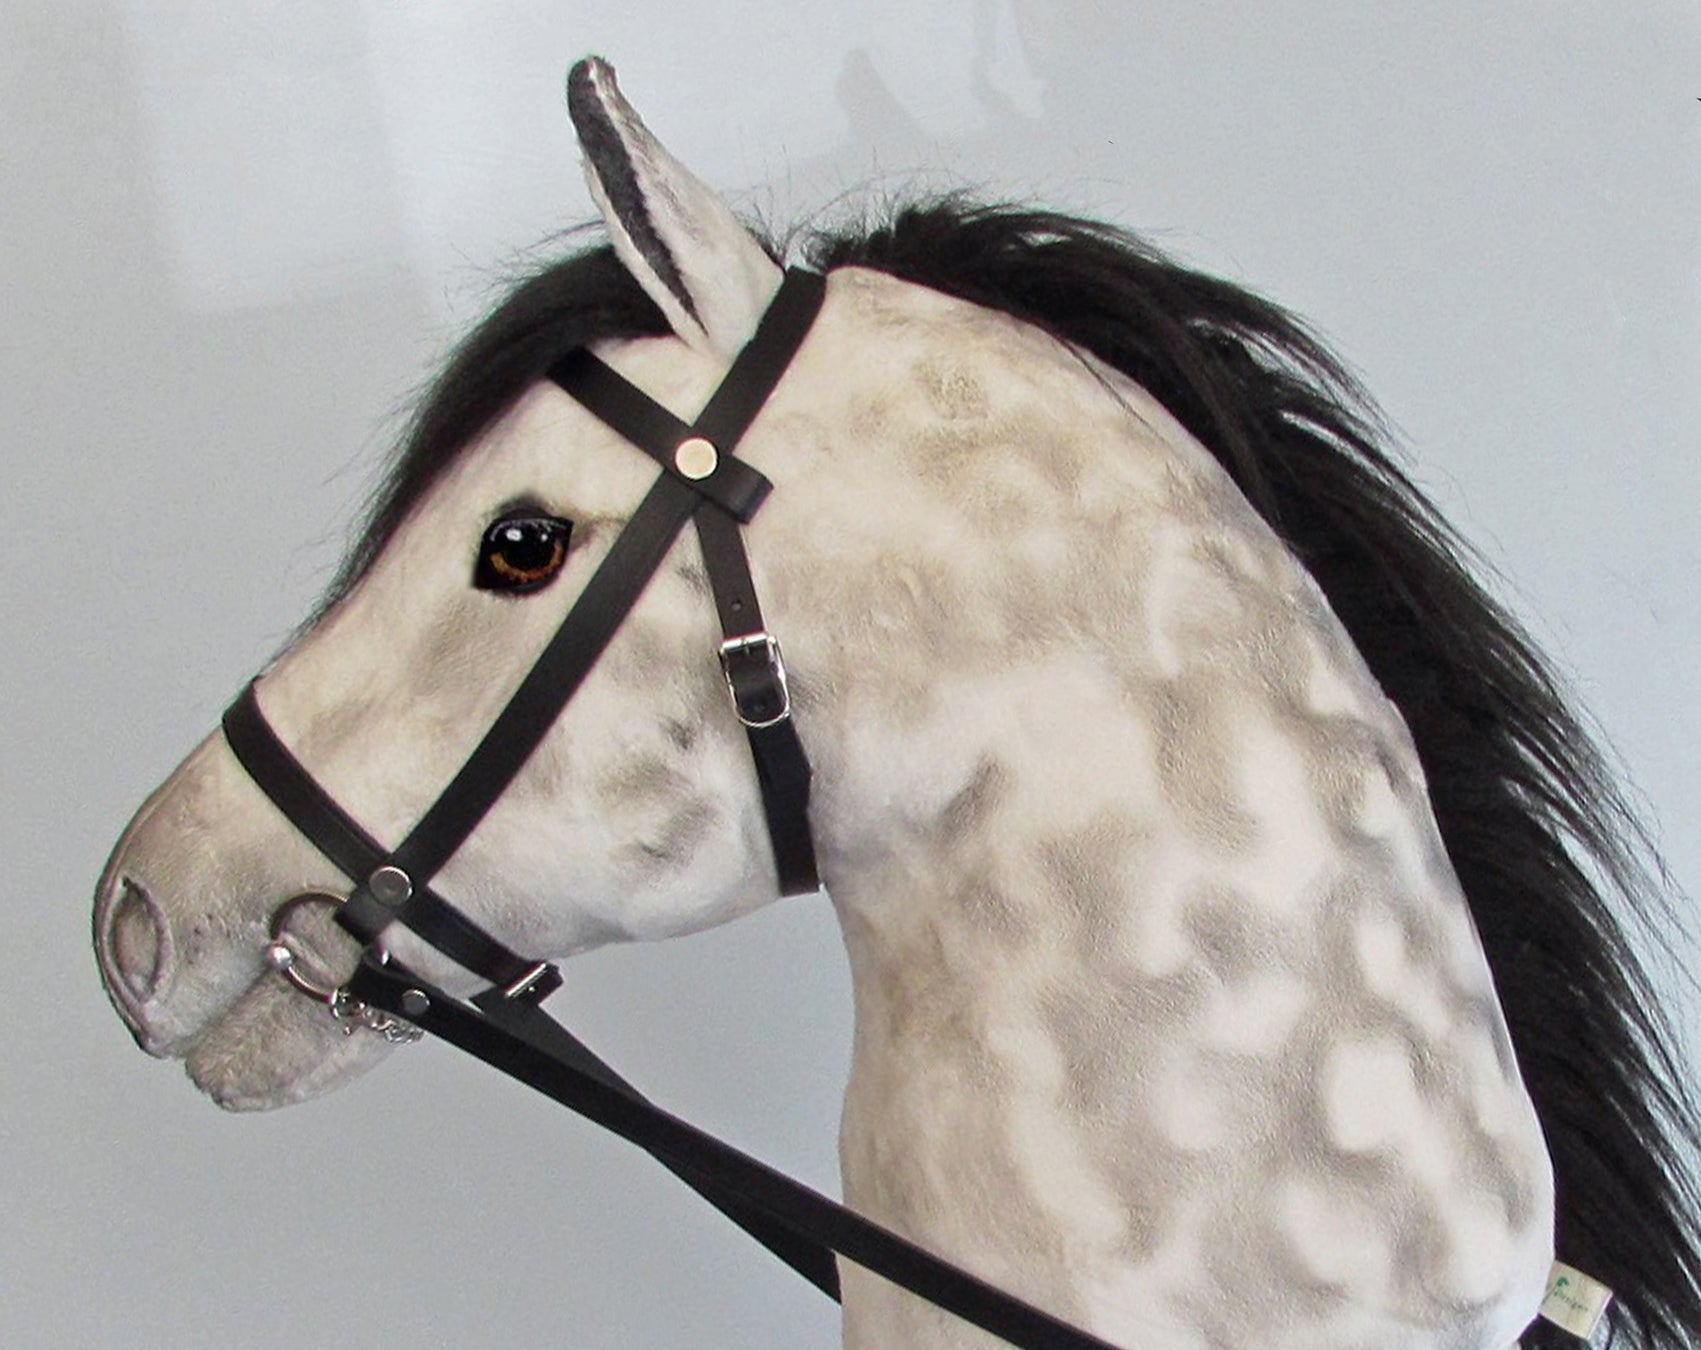 Dapple grey black mane Hobby Horse with removable leather bridle